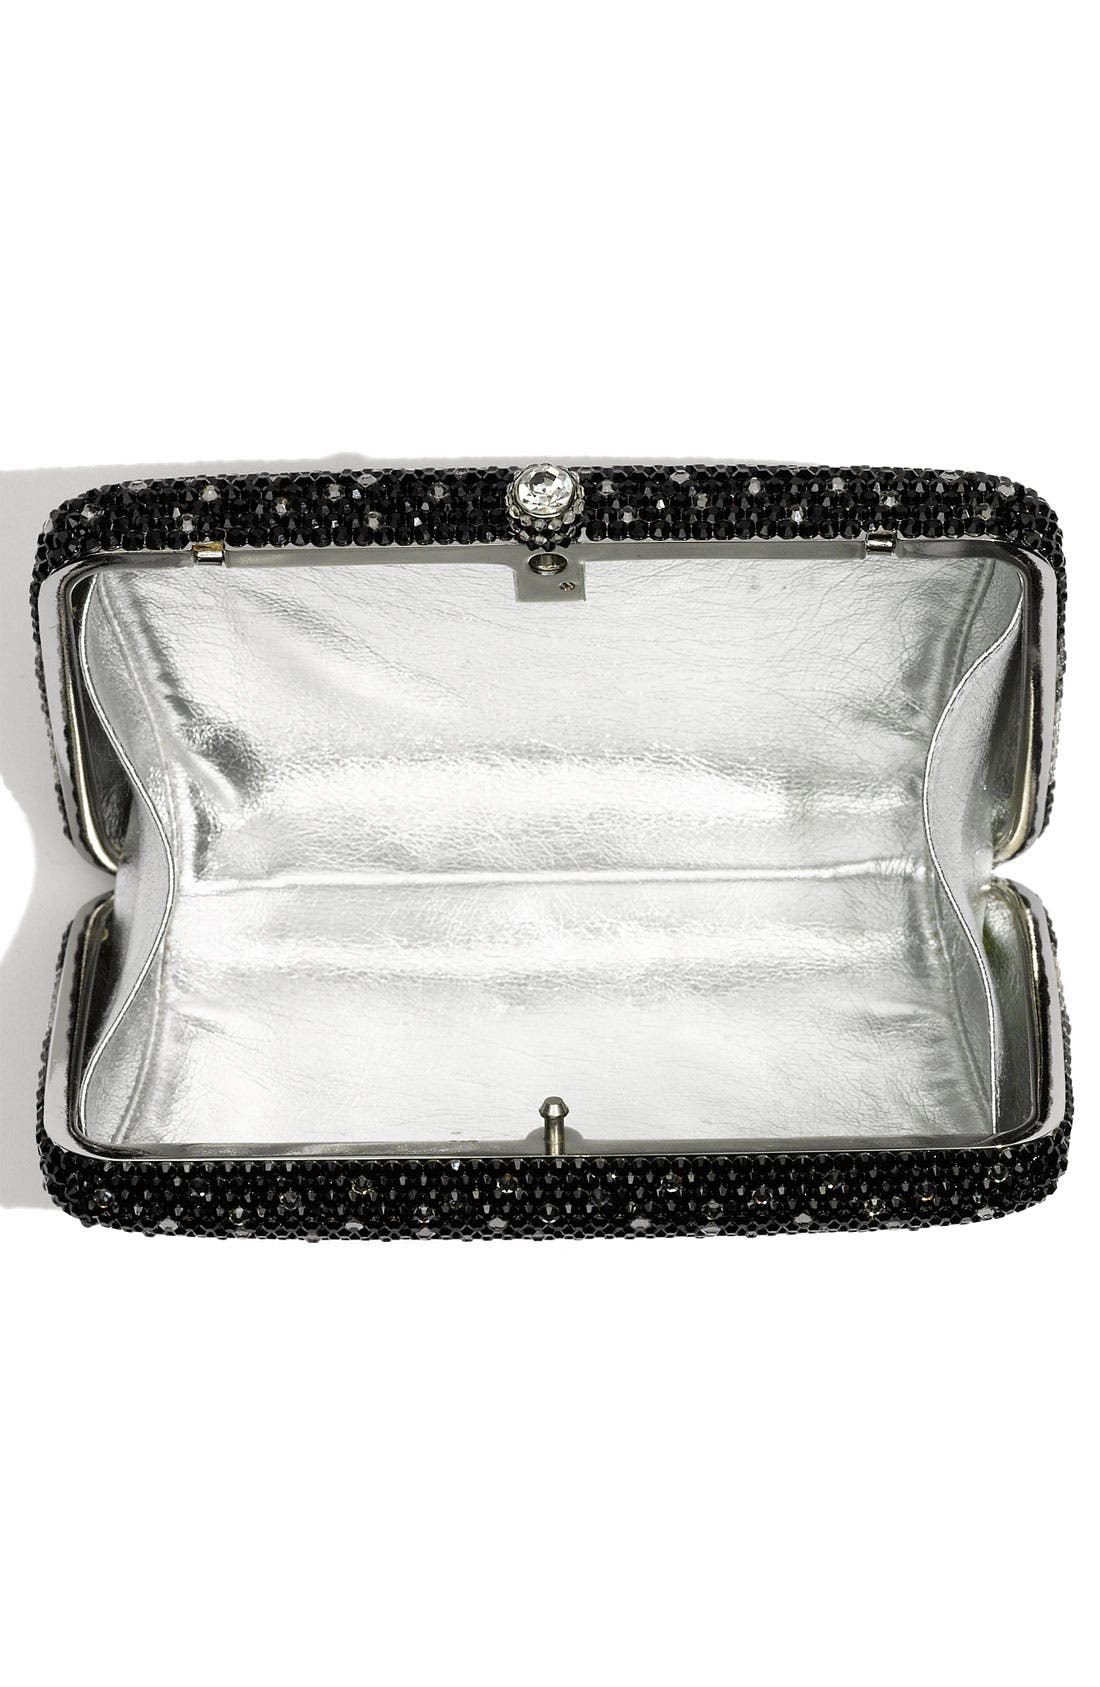 Alternate Image 3  - Natasha Couture Rhinestone Box Clutch